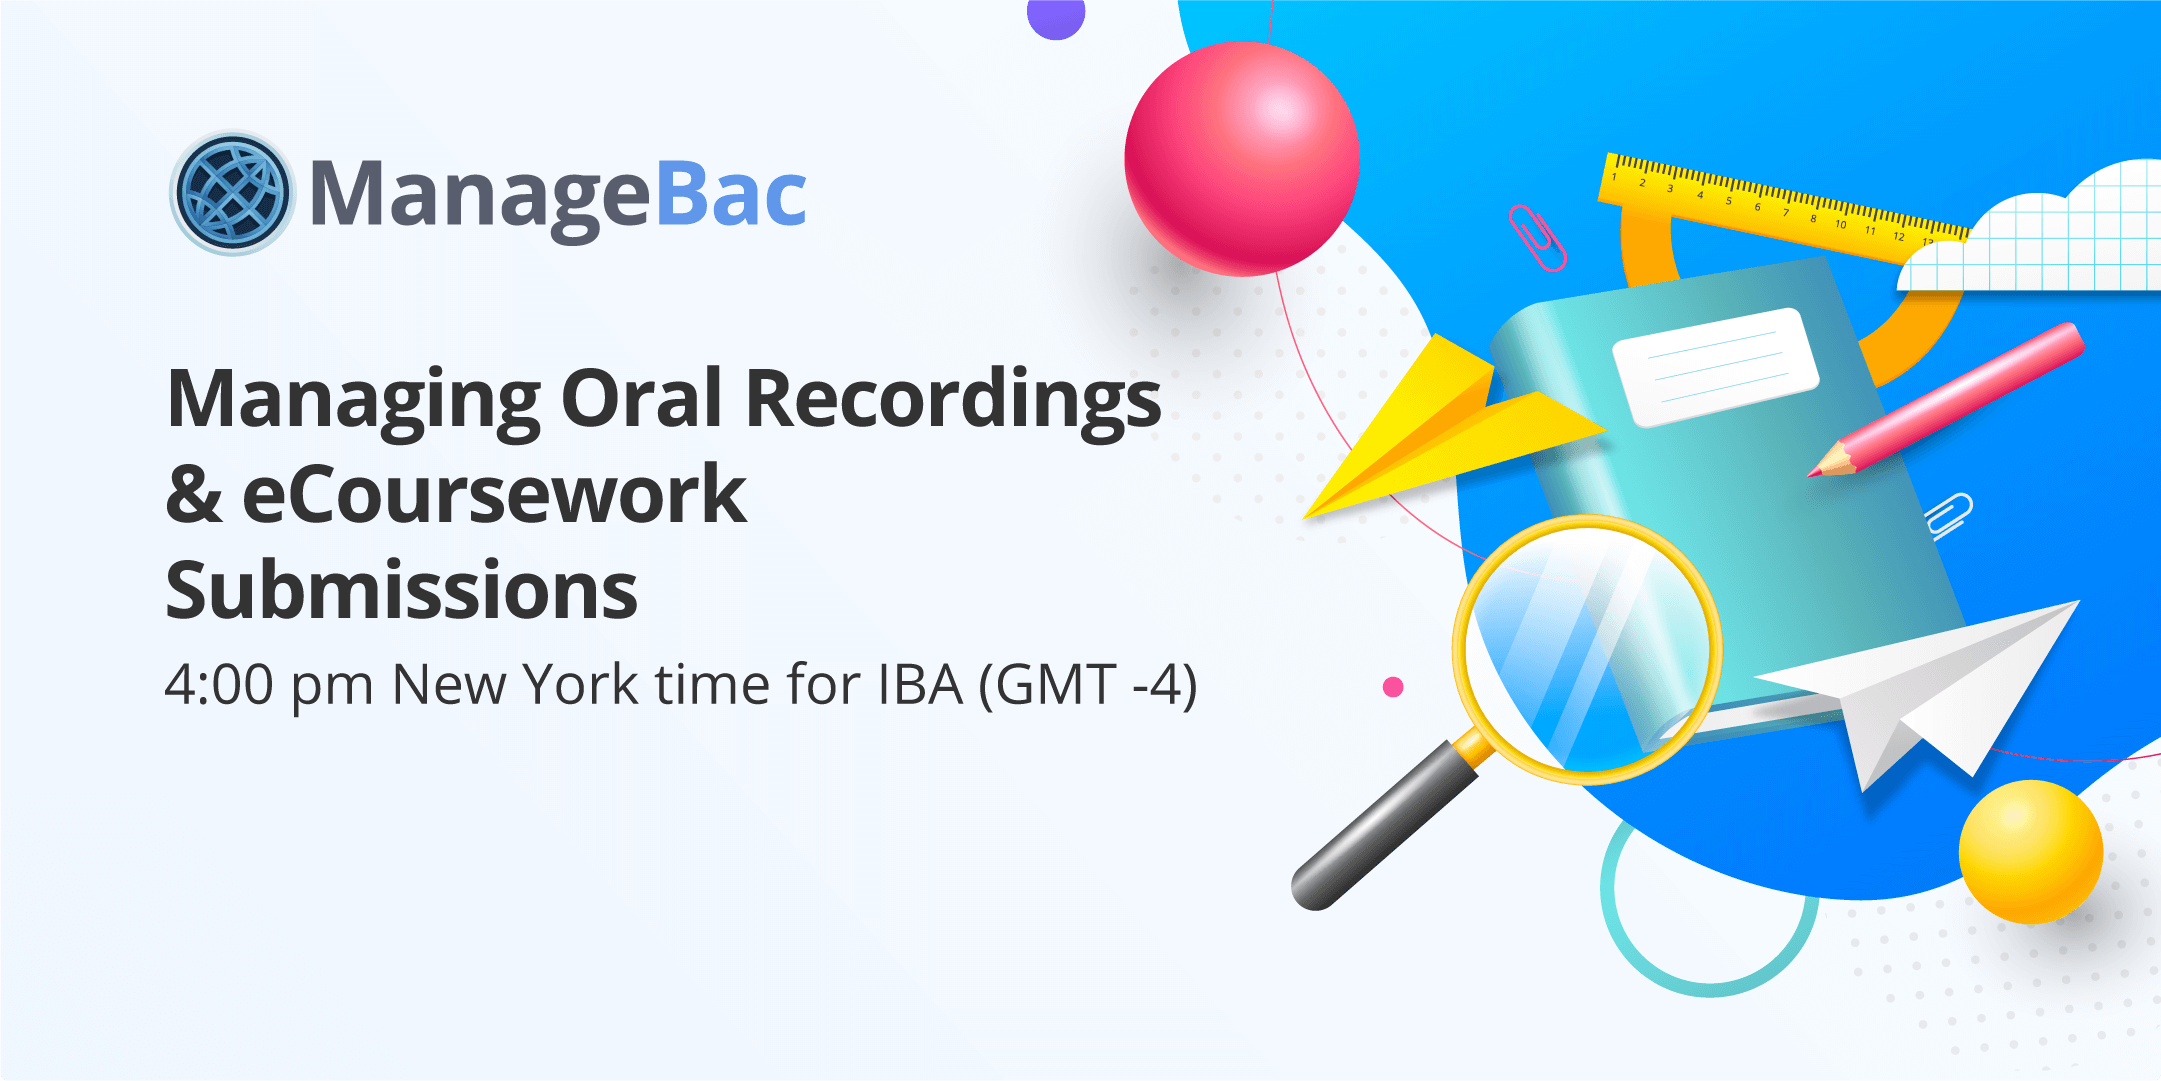 Managing Oral Recordings & eCoursework Submissions